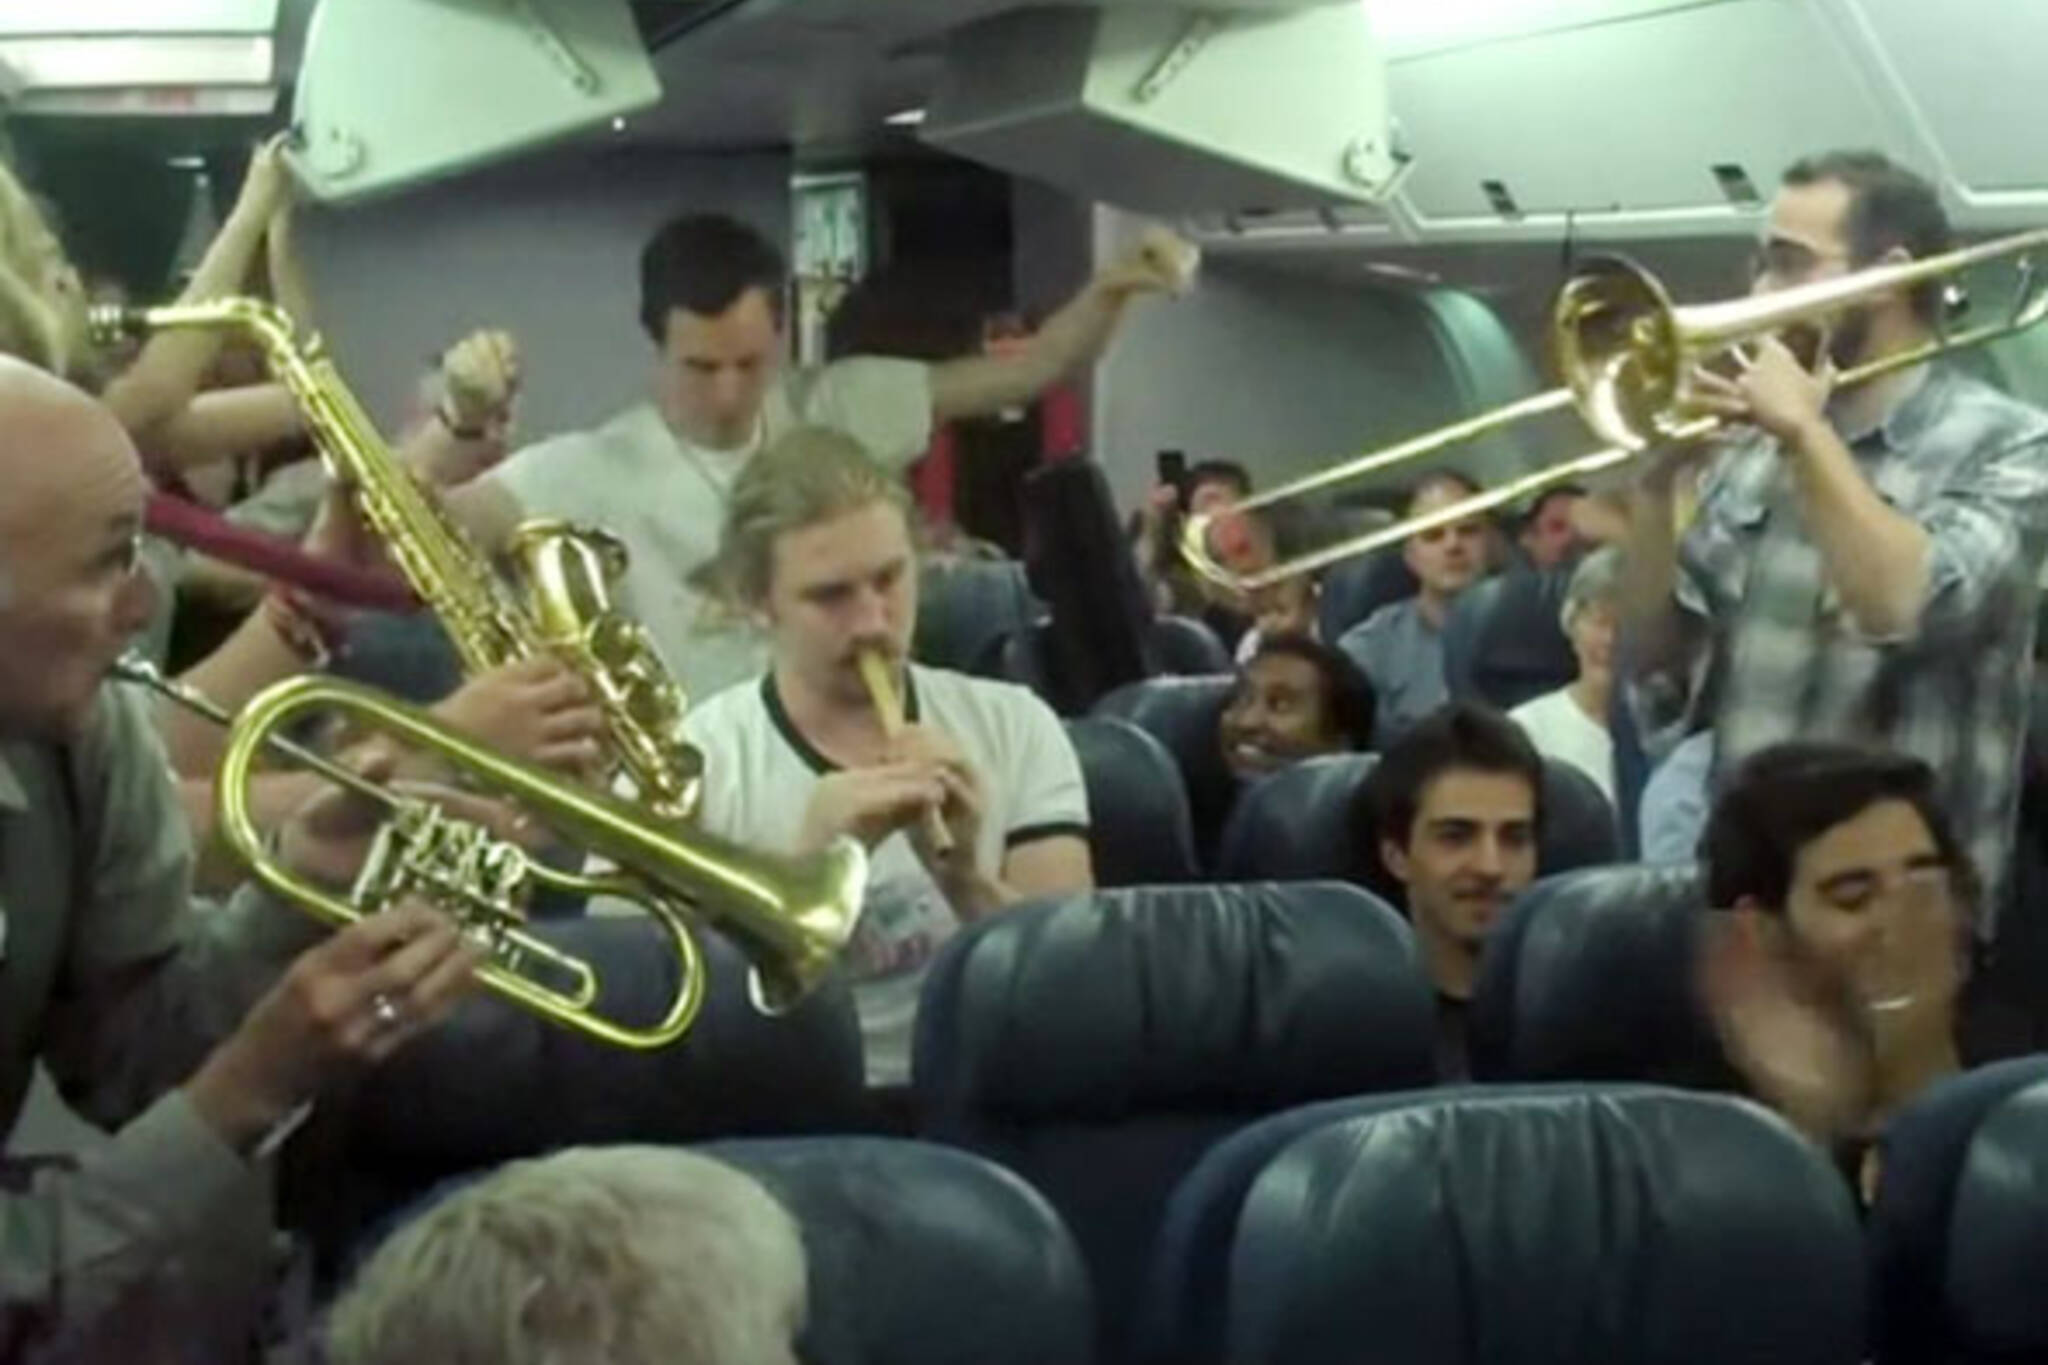 Music on a plane